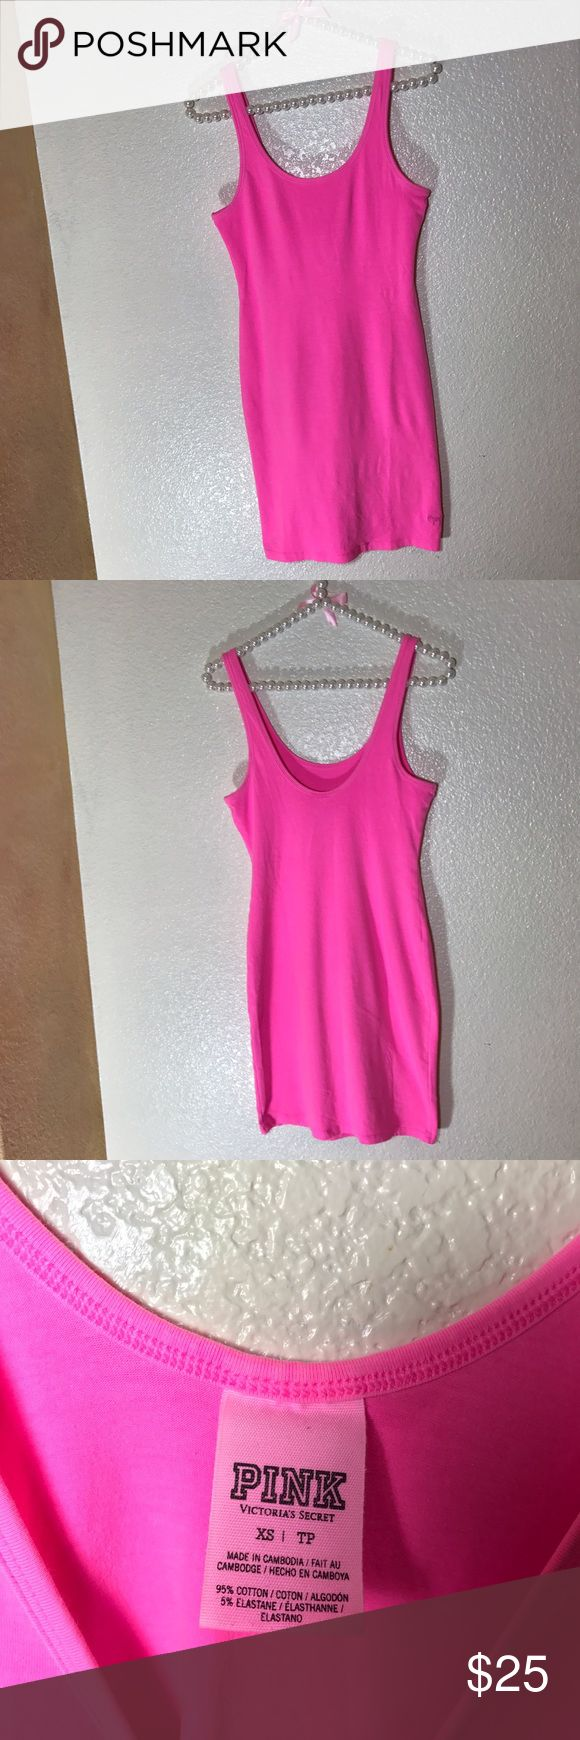 PINK Victoria's Secret Body Con Dress! Sz XS PINK Victoria's Secret Body Con Dress! Sz XS •GUC.     • Fluorescent/hot pink color • missing a few tiny stitches at the bottom in the front • see pic • hardly noticeable • soft and stretchy material • embroidered pink dog logo in the front lower corner PINK Victoria's Secret Dresses Mini